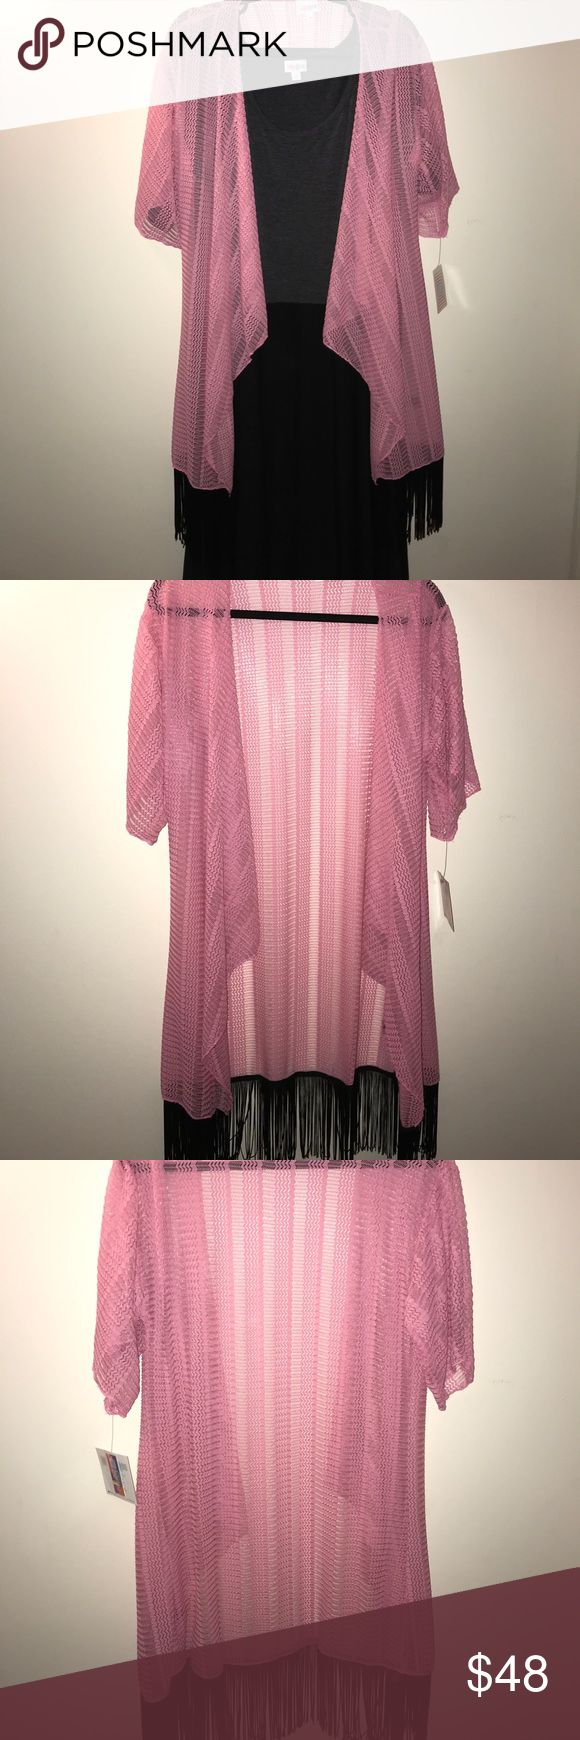 Beautiful Small LuLaRoe Monroe This is not your typical Monroe!! Instead of your chiffon non stretchy material this is nylon/spandex mix that stretches!! I normally can only fit the large Monroes but I can wear this with ease!!! It's a pretty pink pink with black fringe!! BNWT (Dress not included) LuLaRoe Other